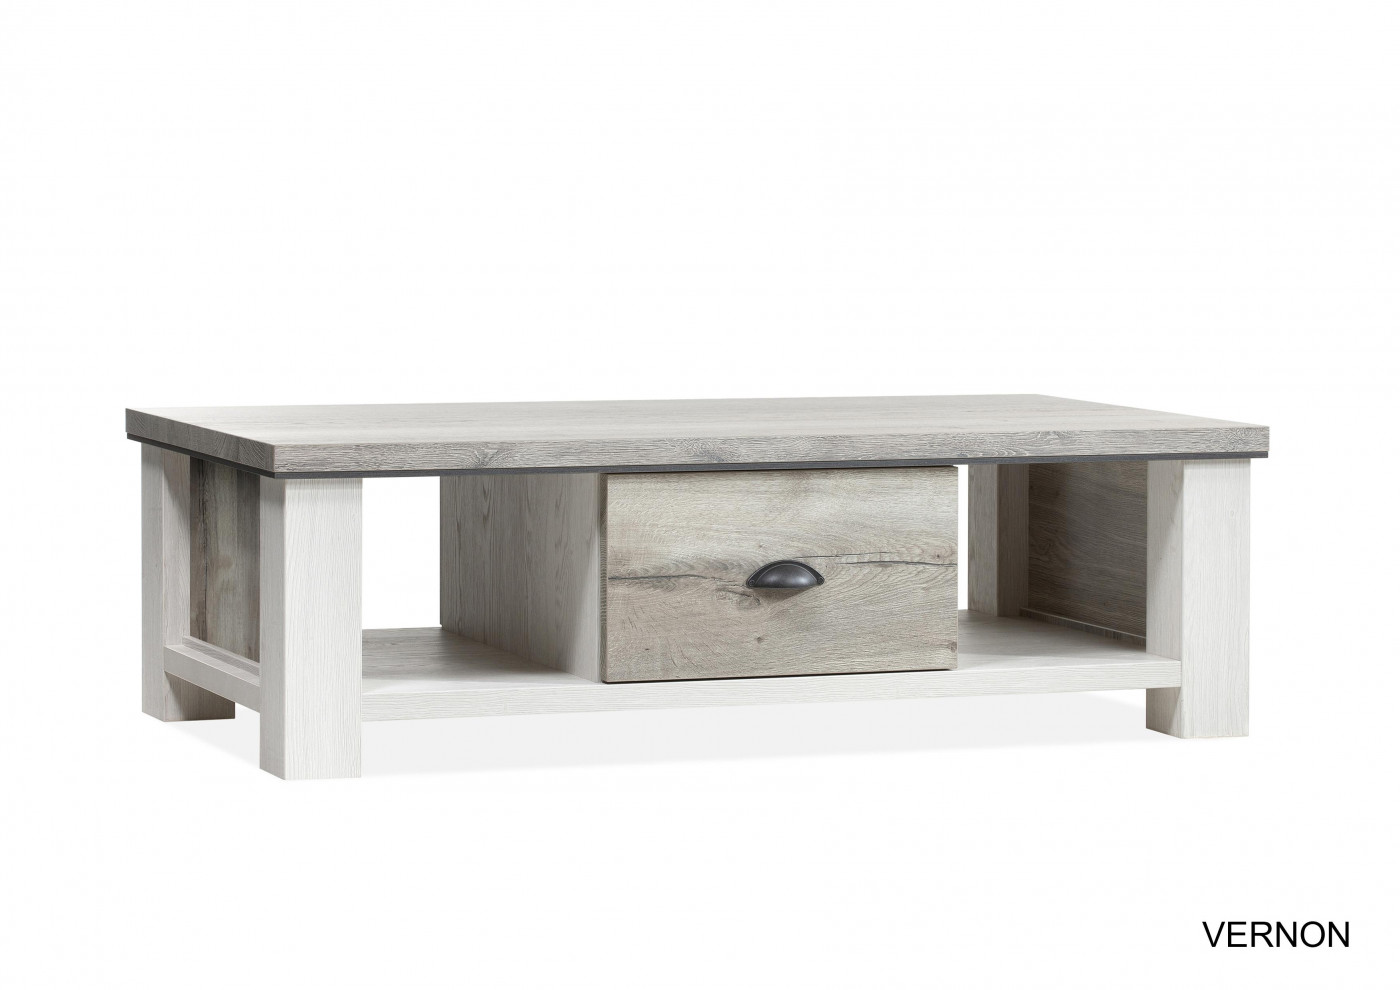 TABLE BASSE VERNON